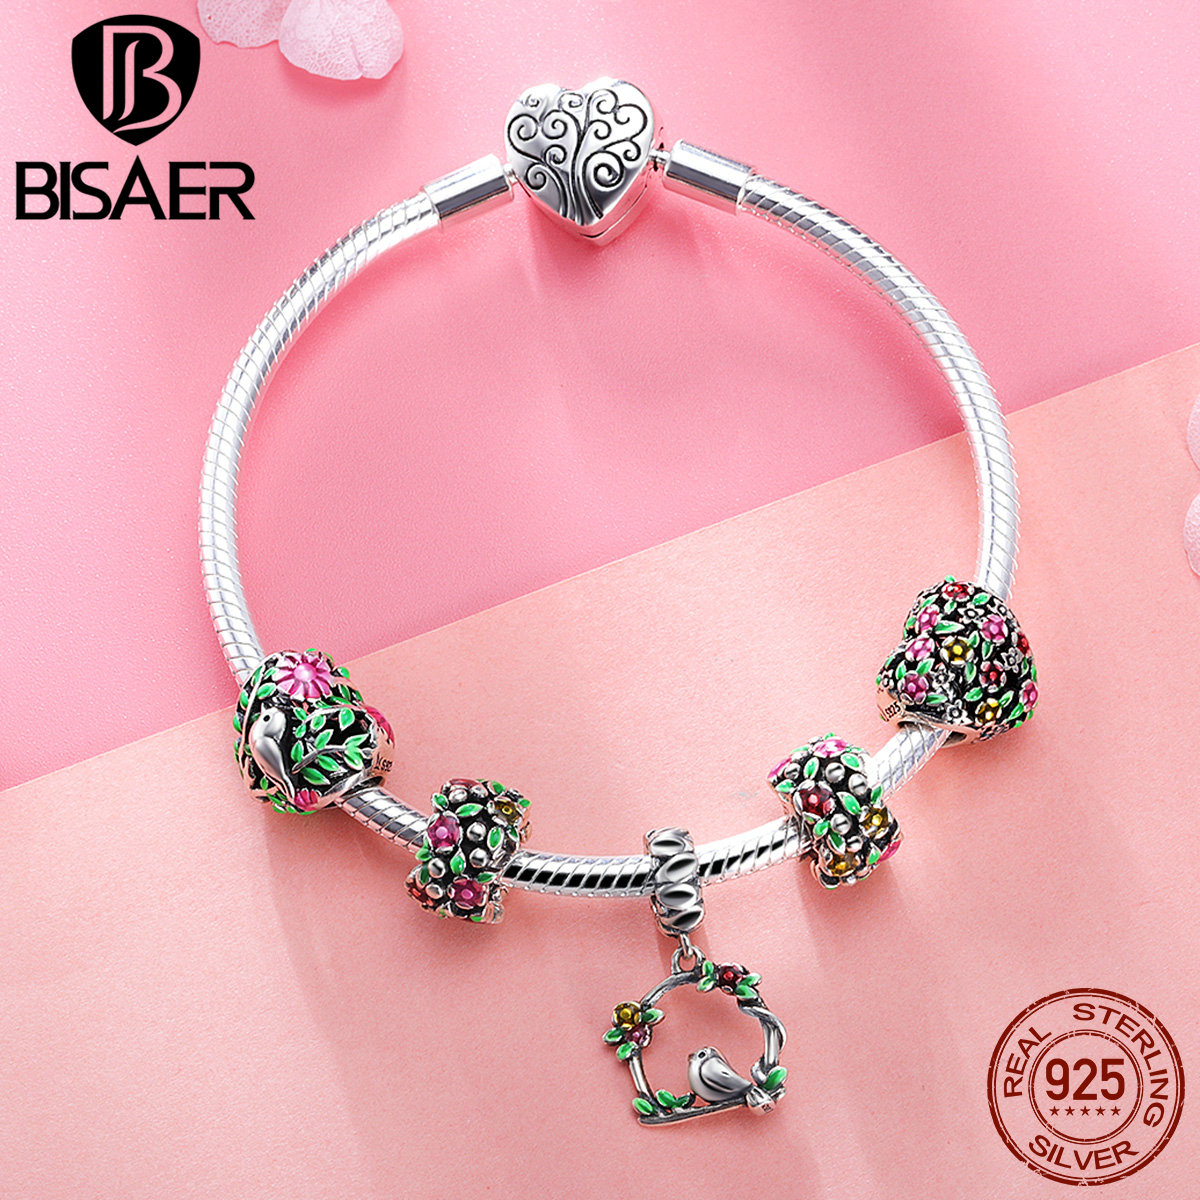 BISAER 2019 New 925 Sterling Silver Bird In Bush Heart Green Summer Collection Charm Bracelet Female